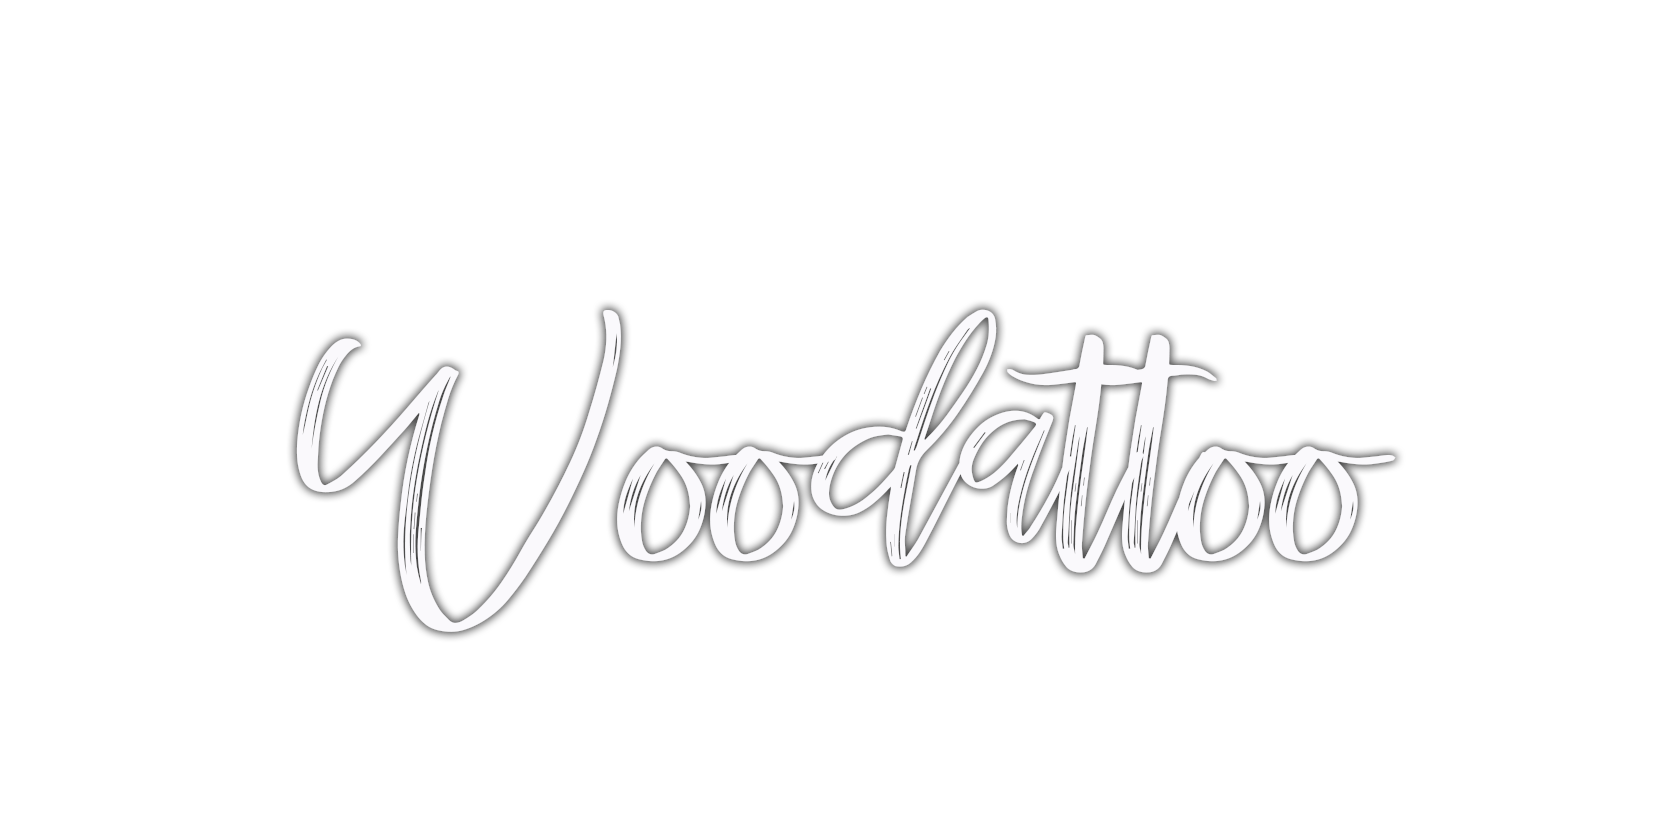 woodattoo-white-oH..png